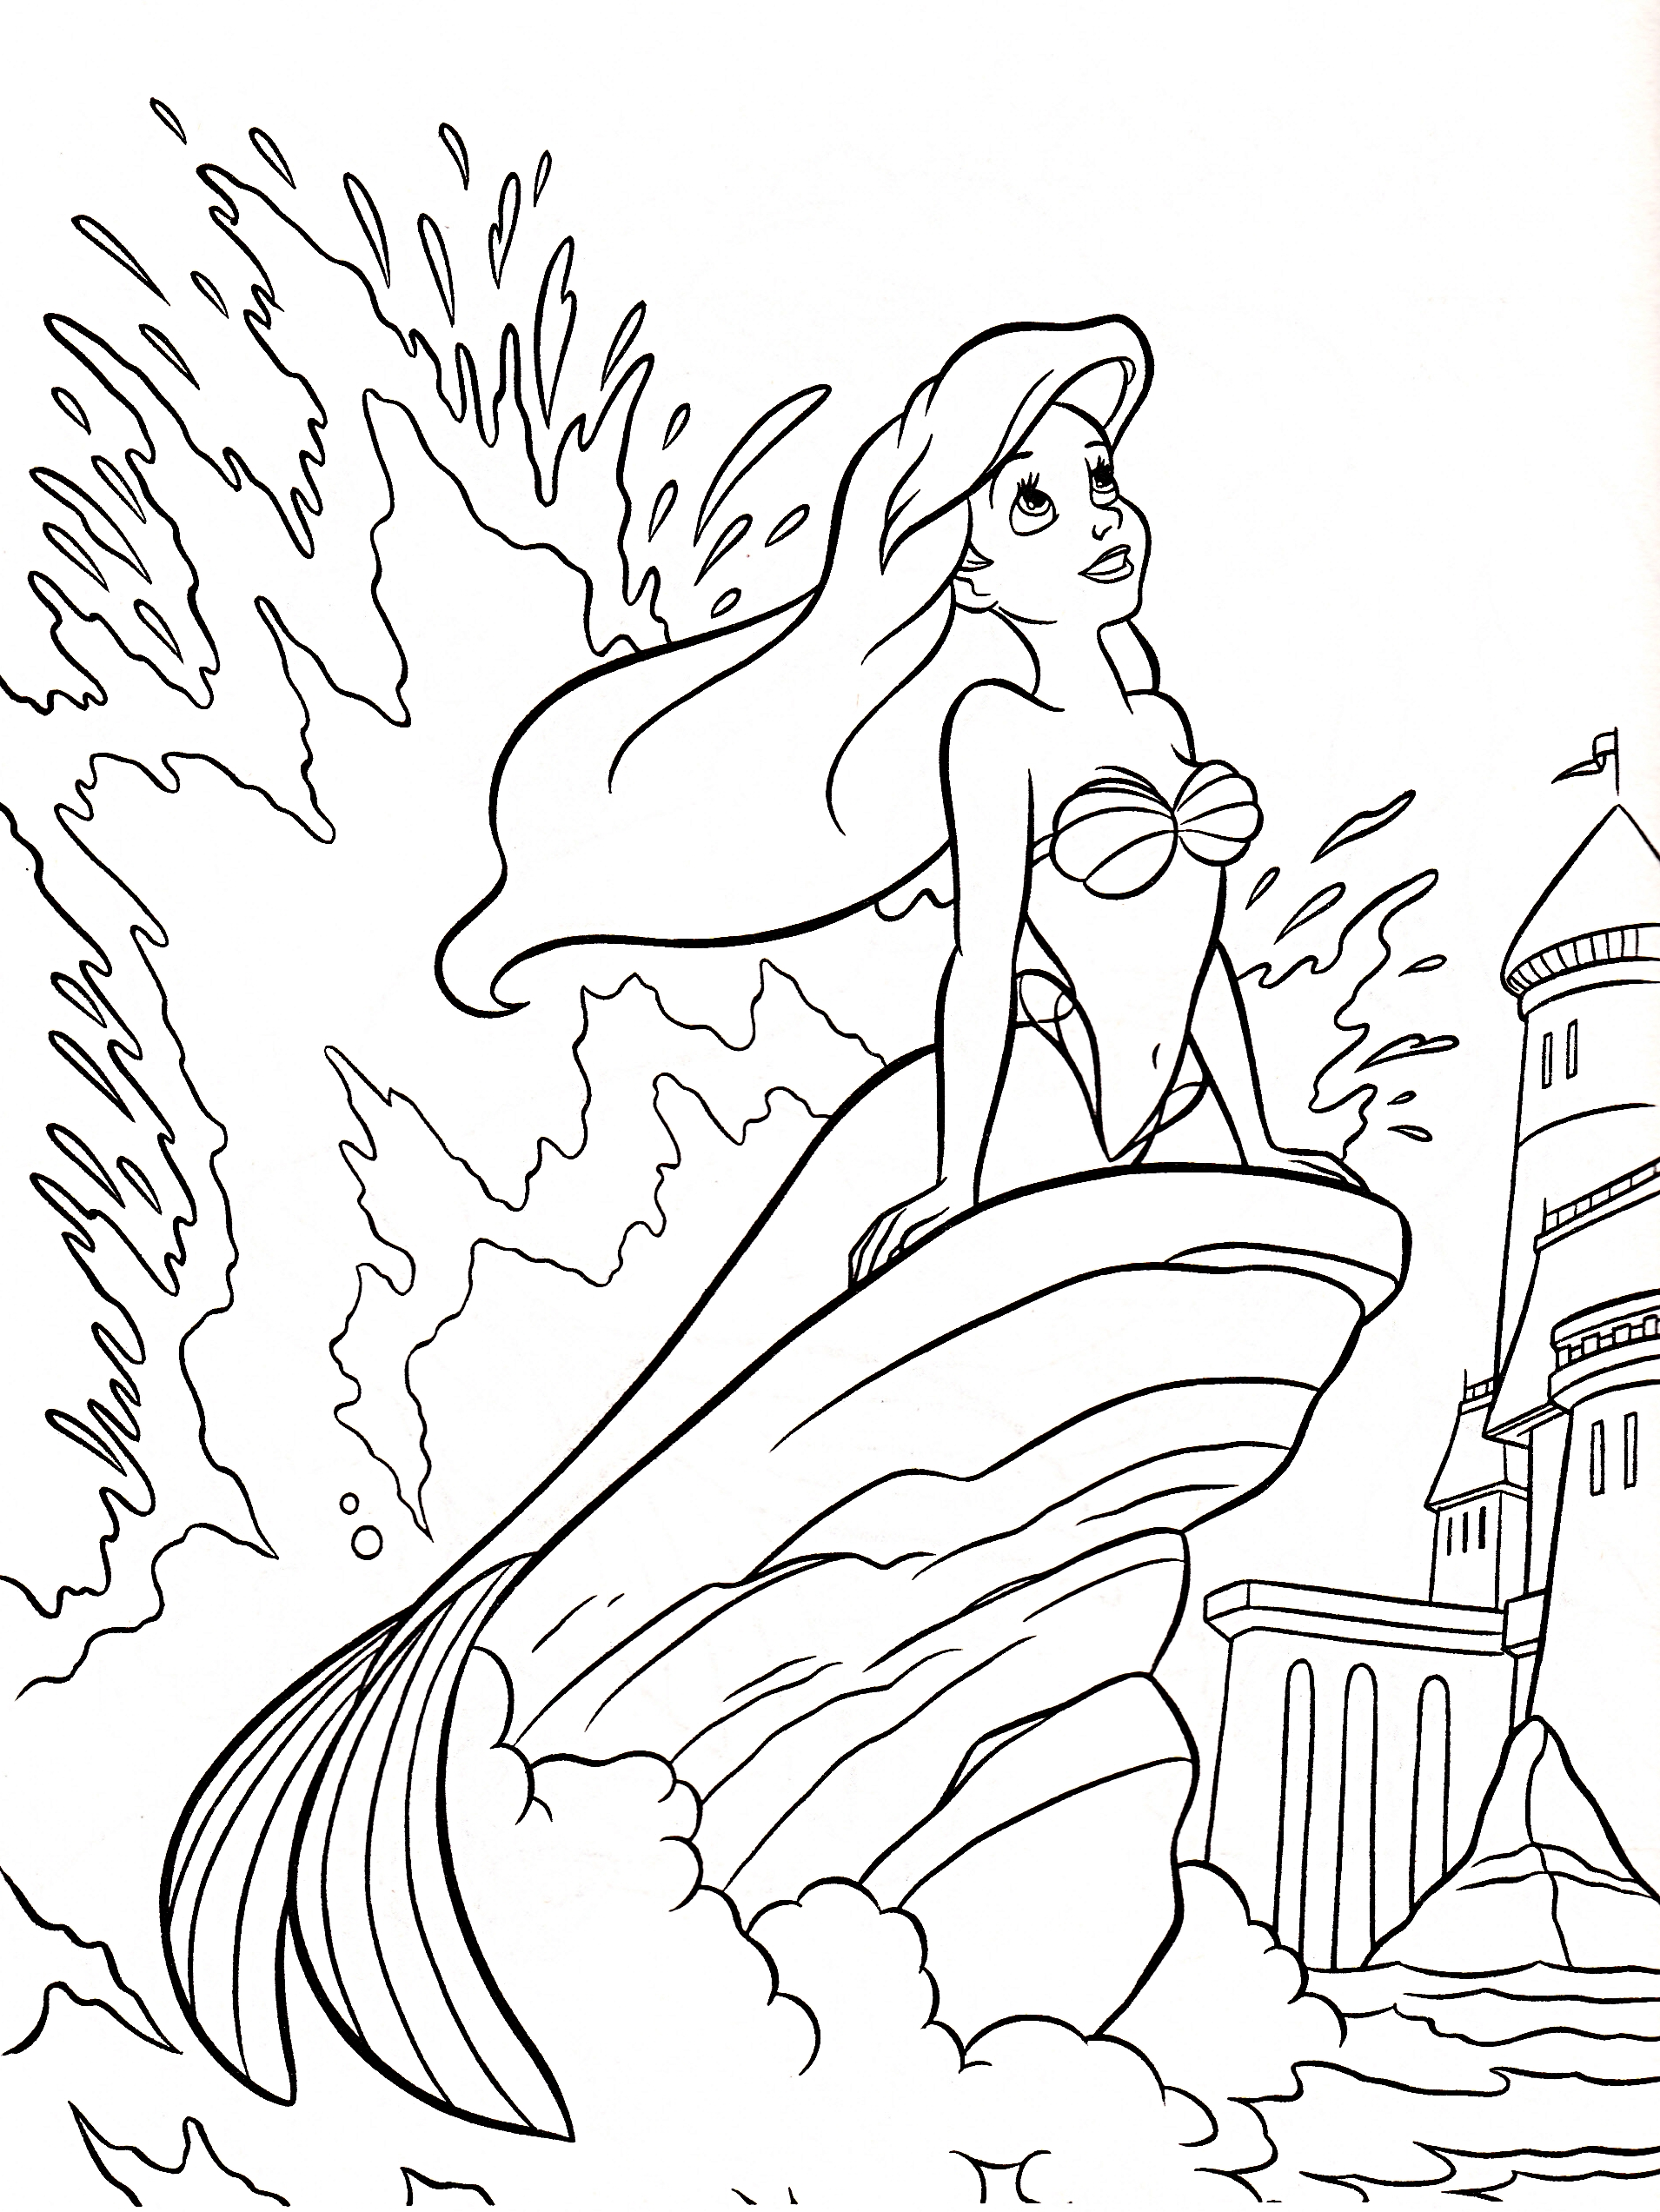 disney princess characters coloring pages - photo#14